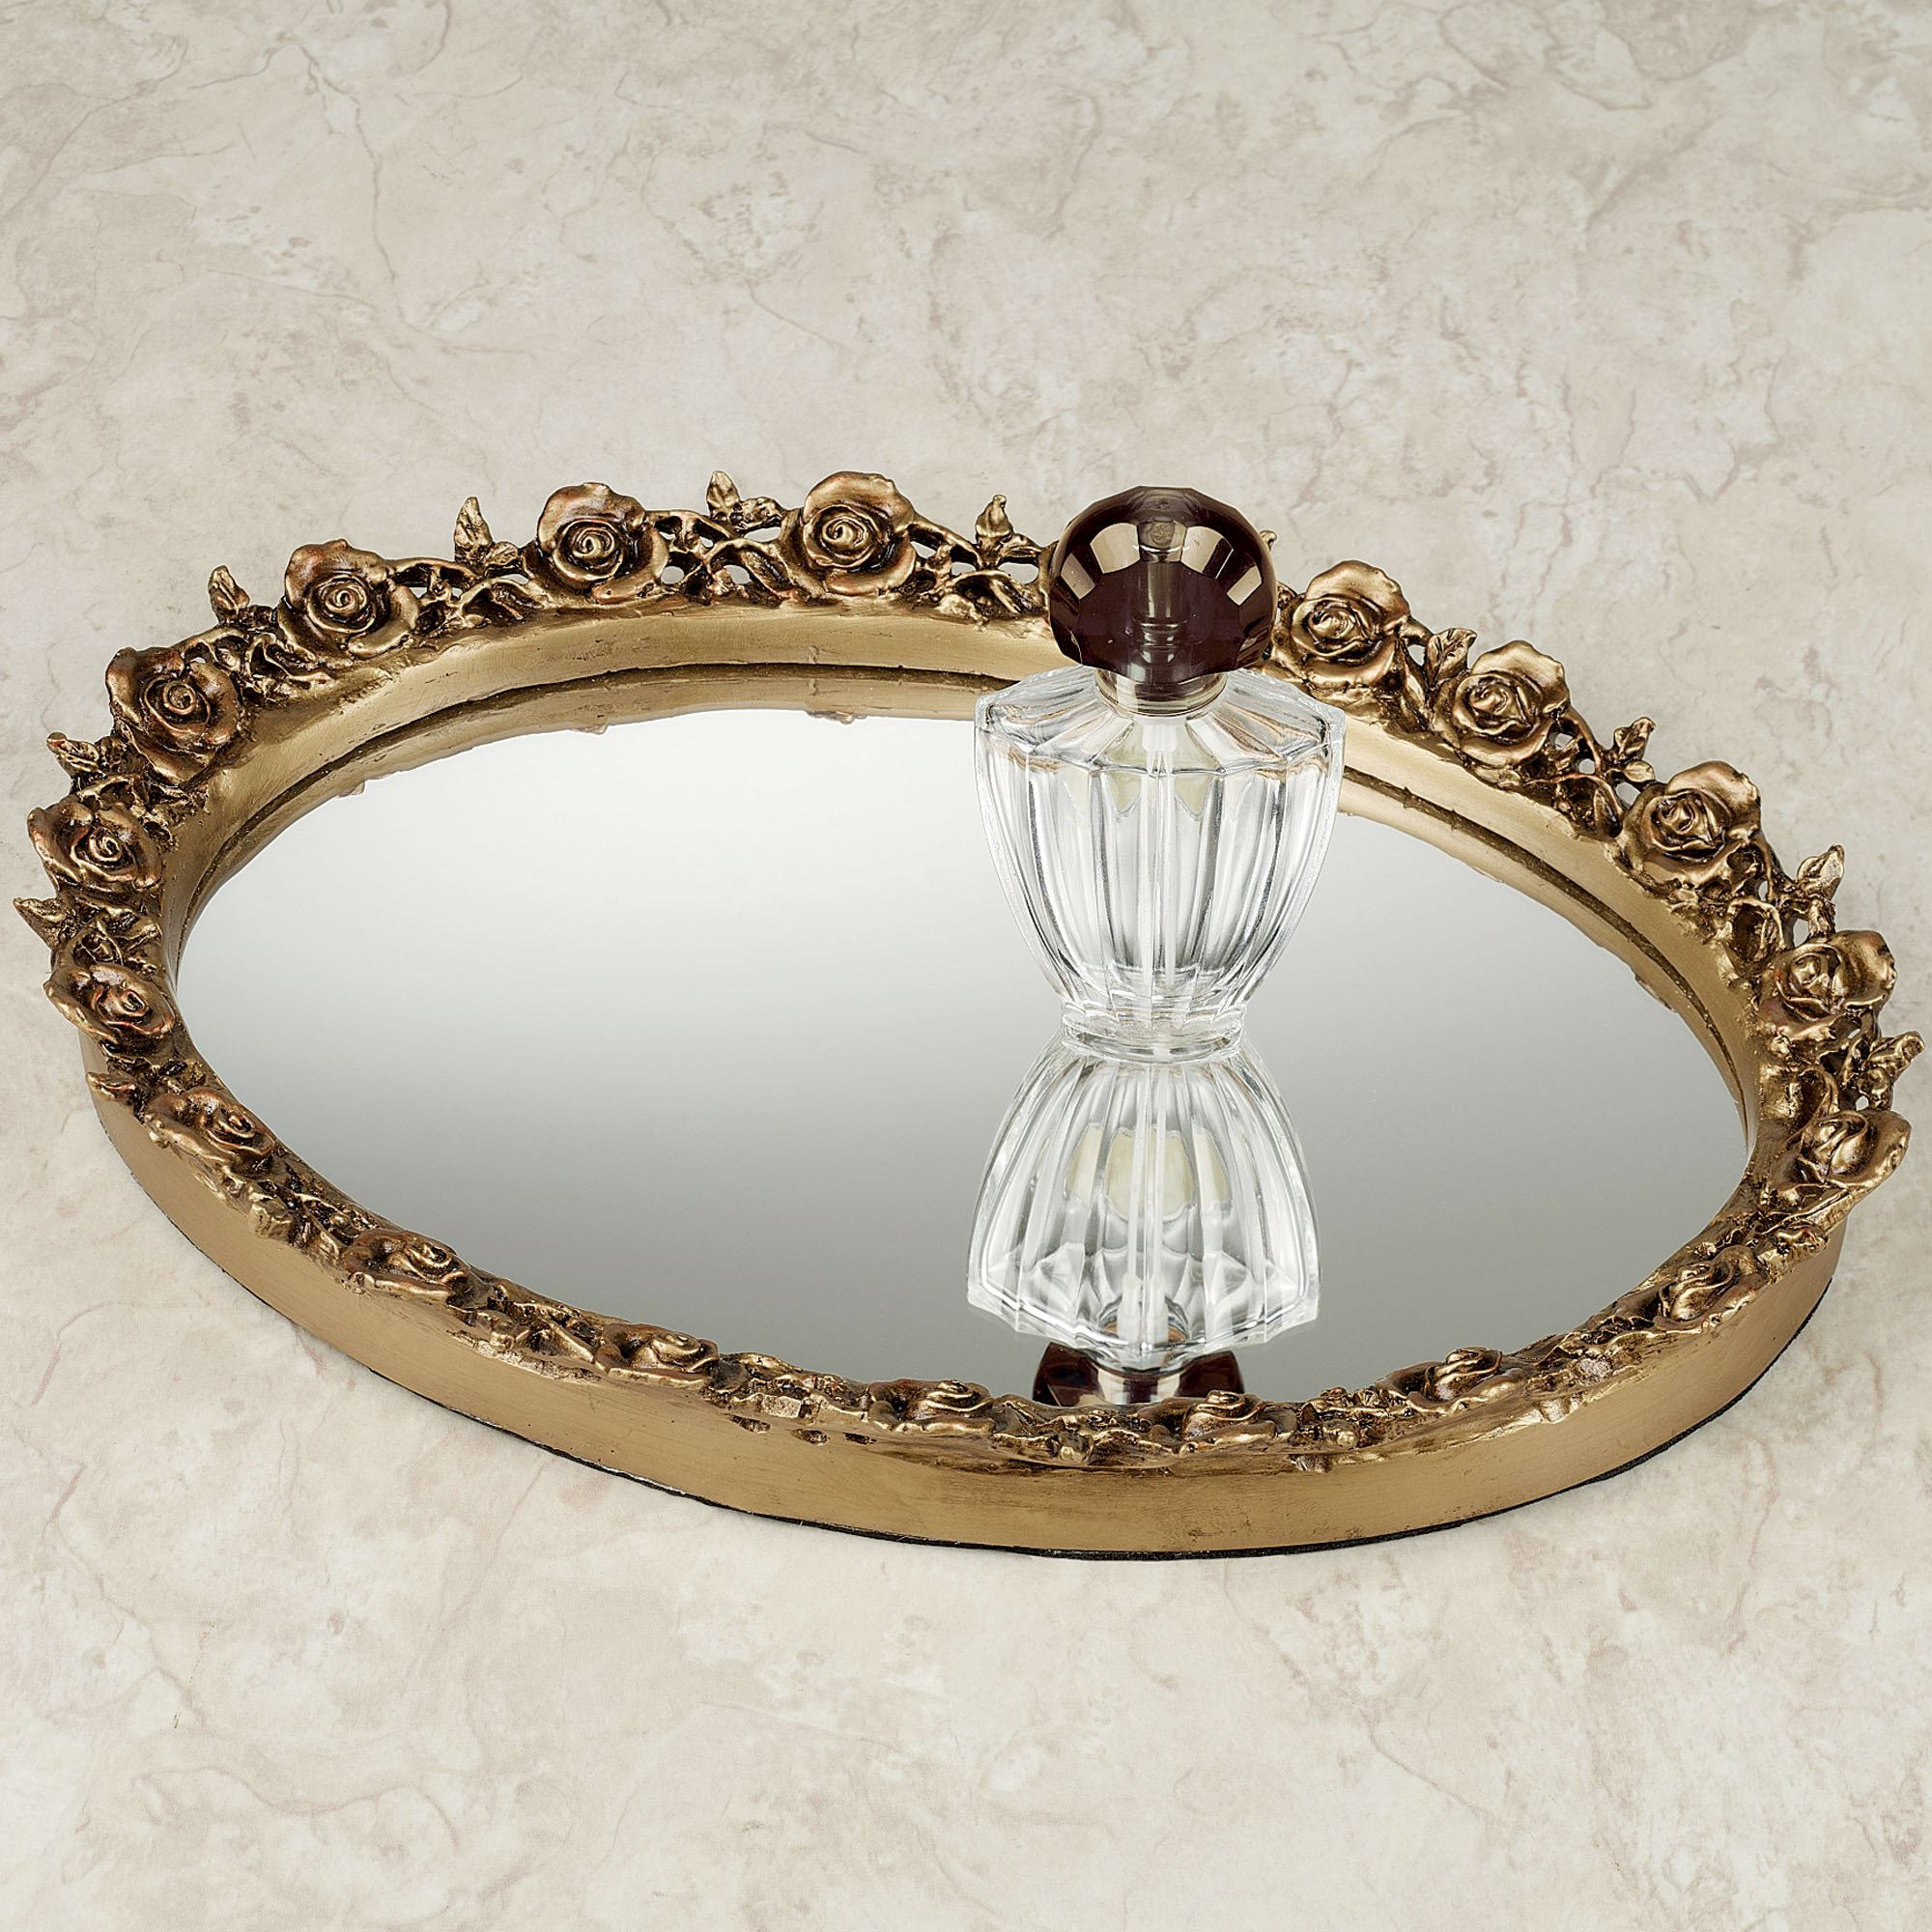 Beautiful mirrored vanity tray